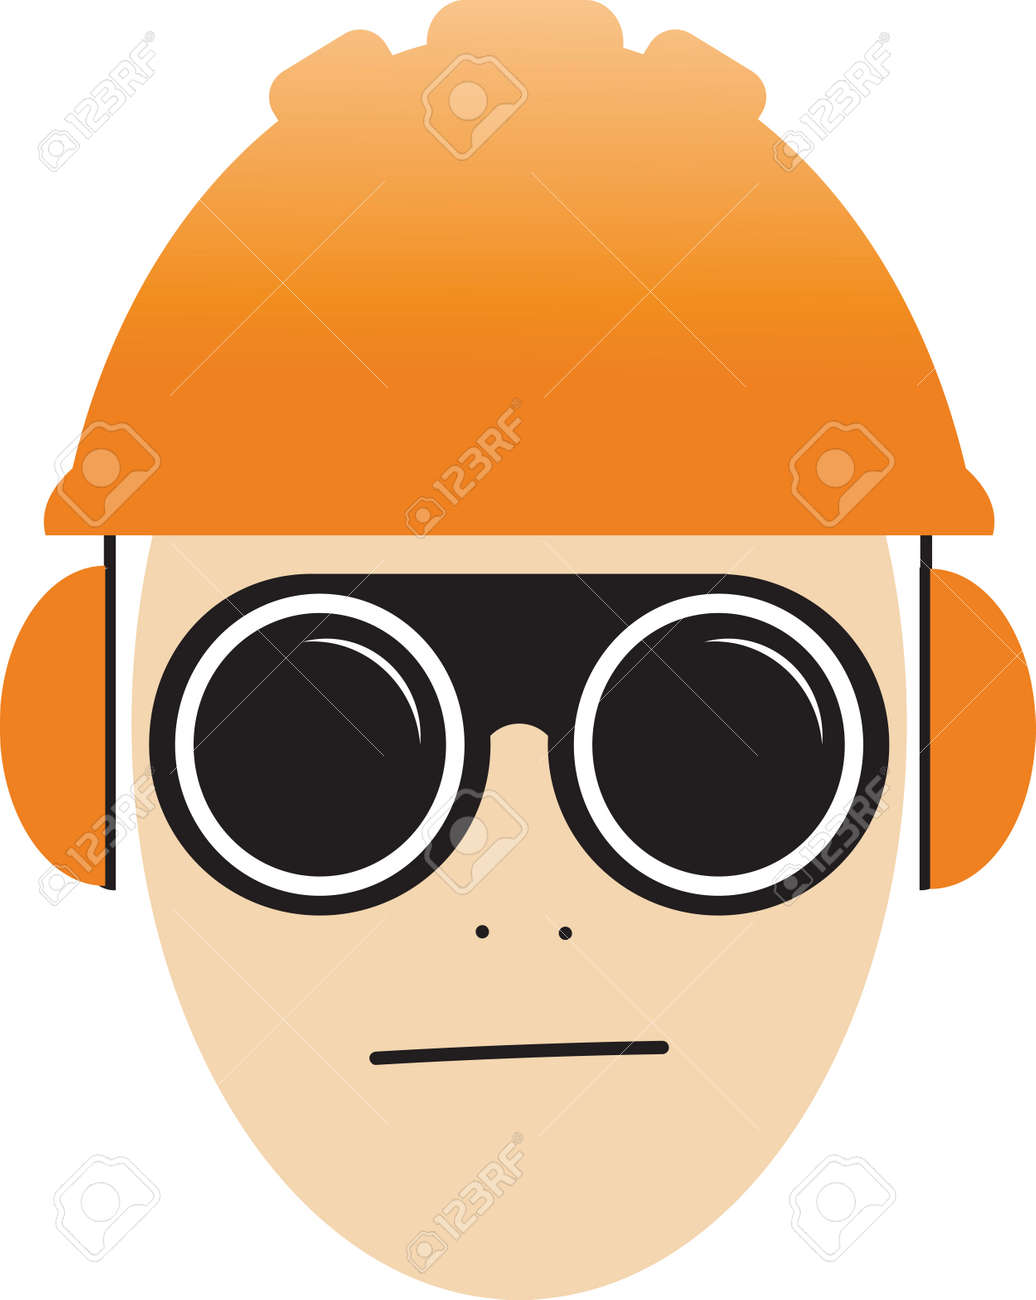 Job safety icon illustration vector, worker wearing glasses, helmet and ear protection - 164665341